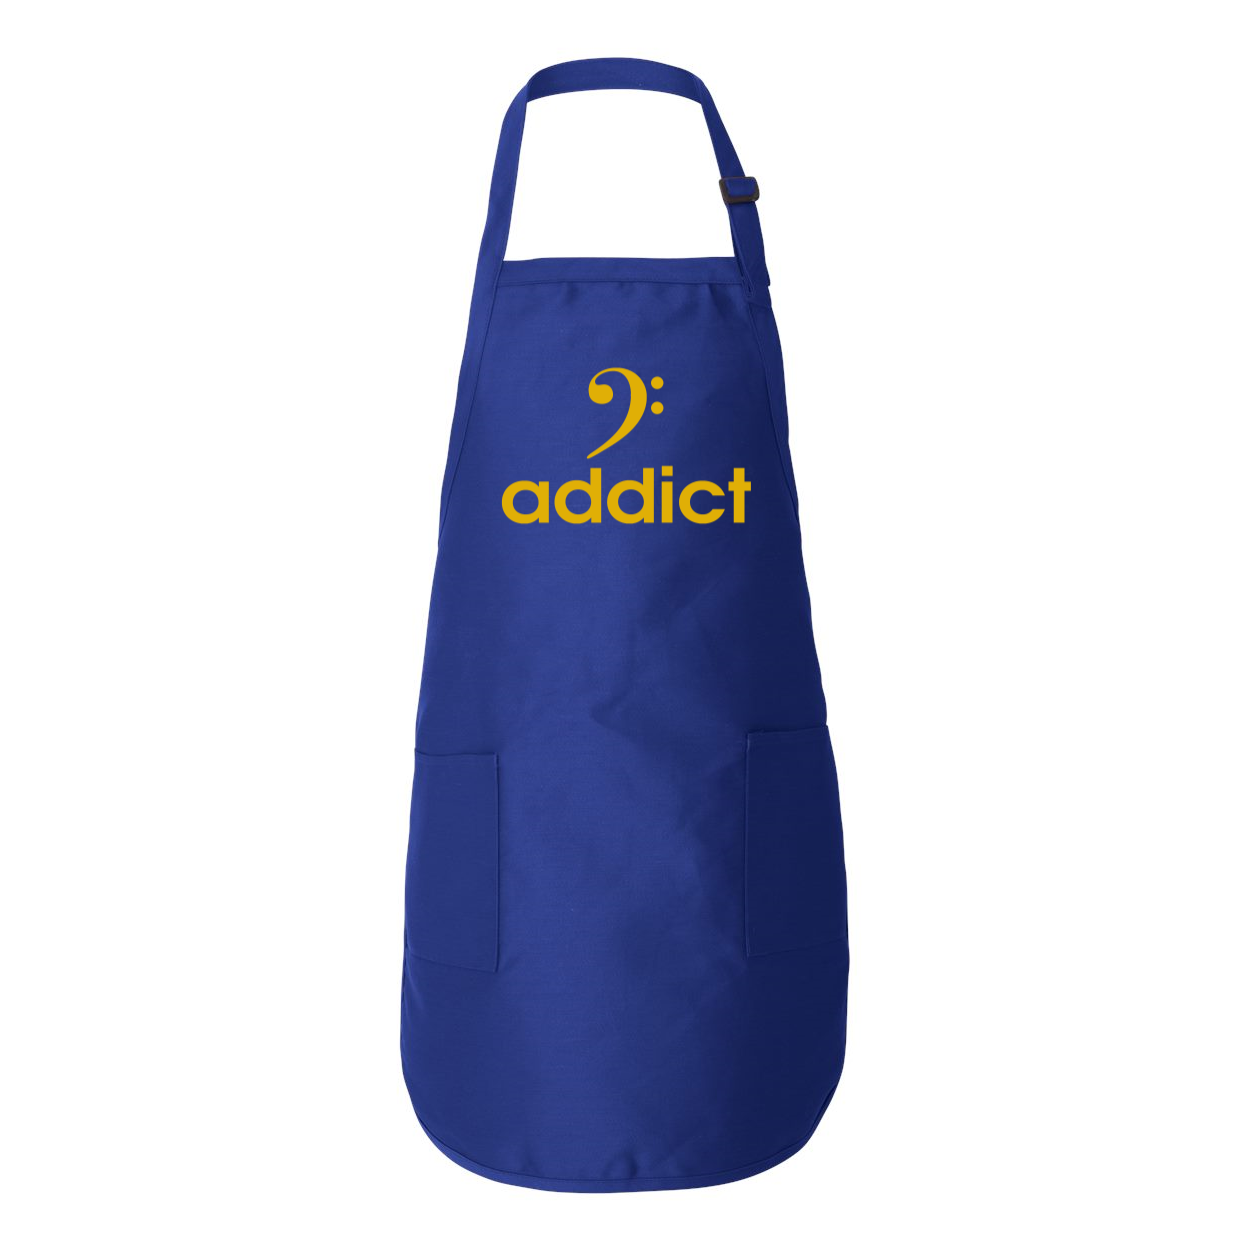 BASS ADDICT - GOLD Full-Length Apron with Pockets - Lathon Bass Wear